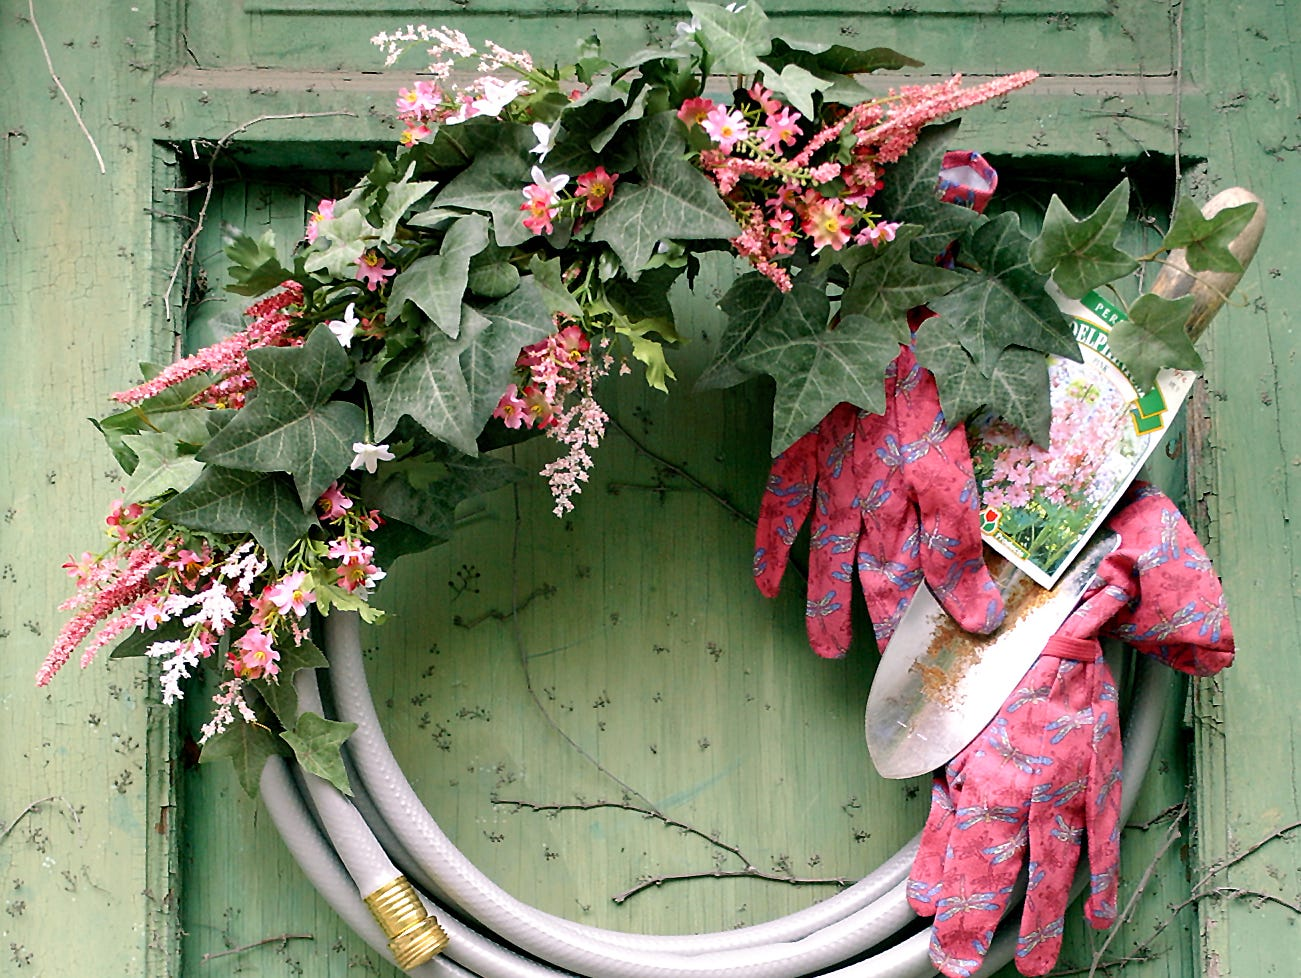 Adorn your front door or garden gate with this wreath fashioned from old garden tools.